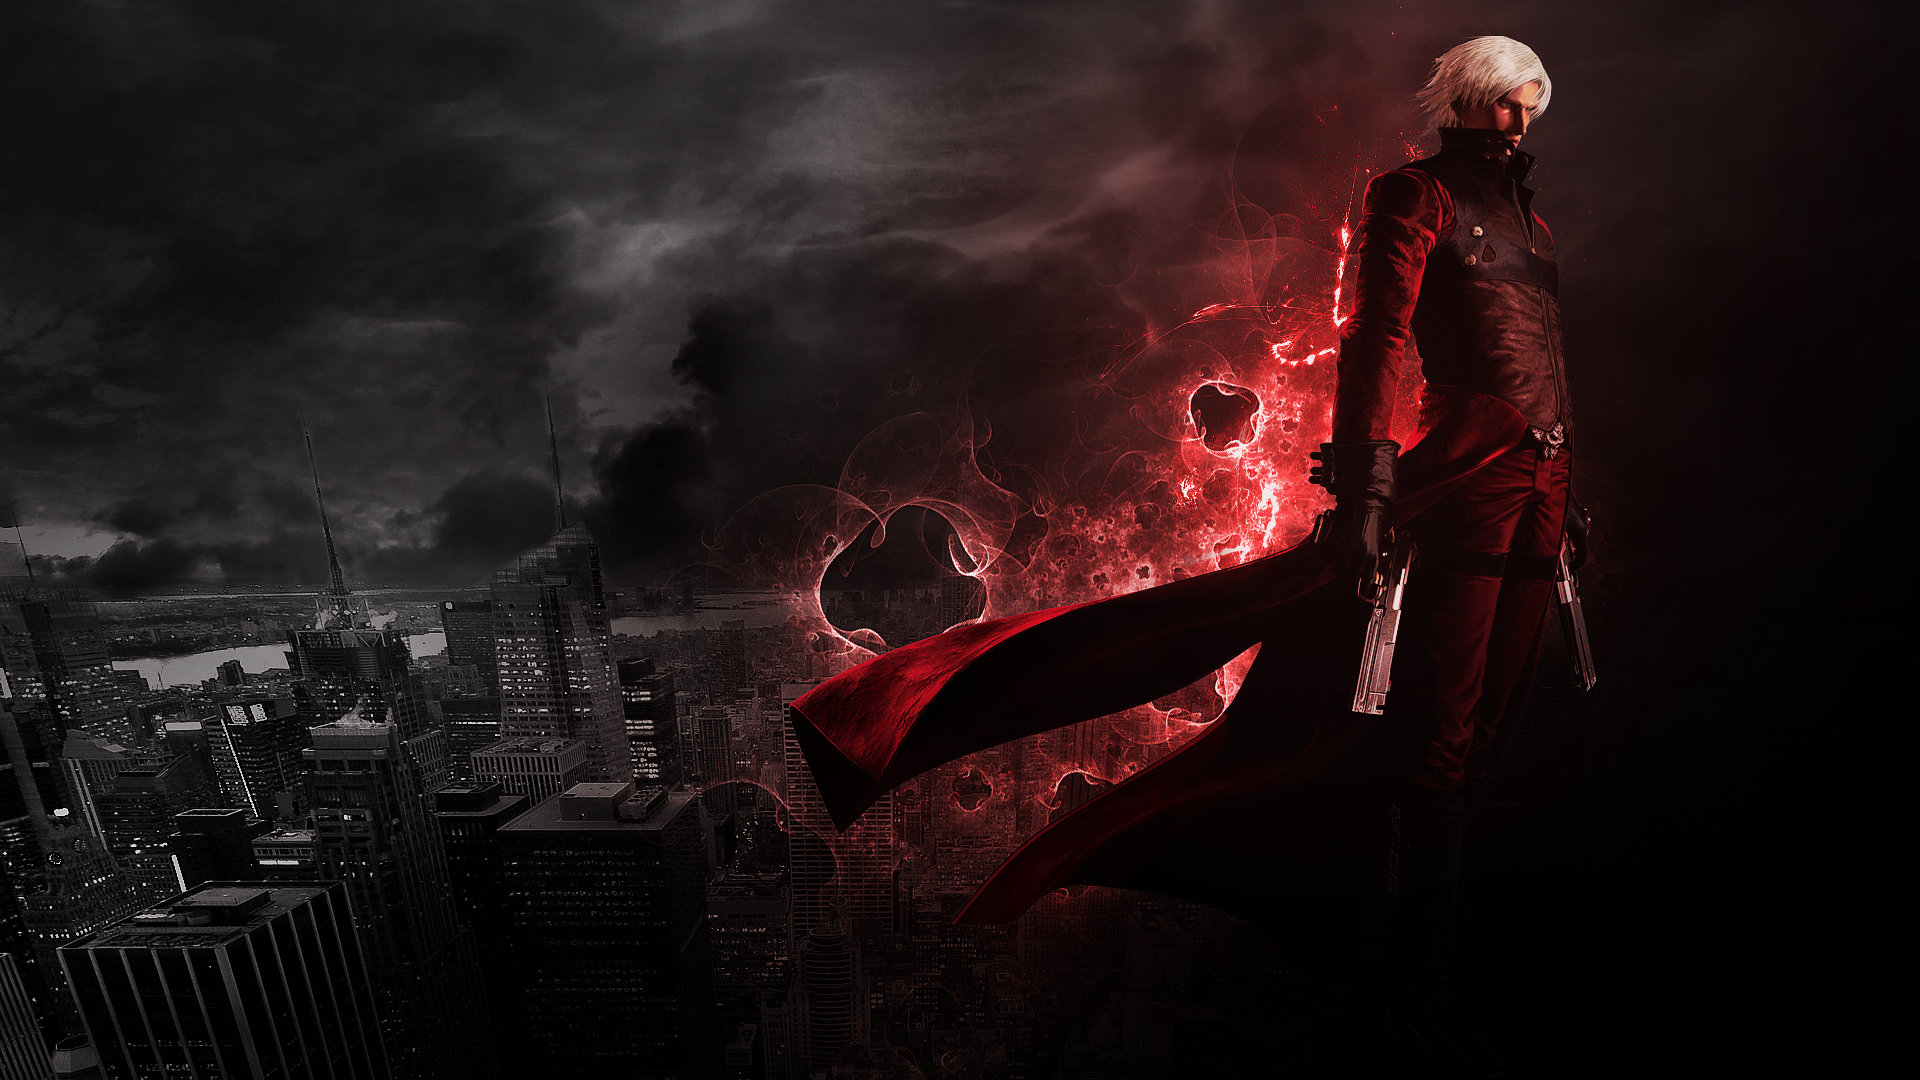 75 ] Devil May Cry Wallpaper on WallpaperSafari